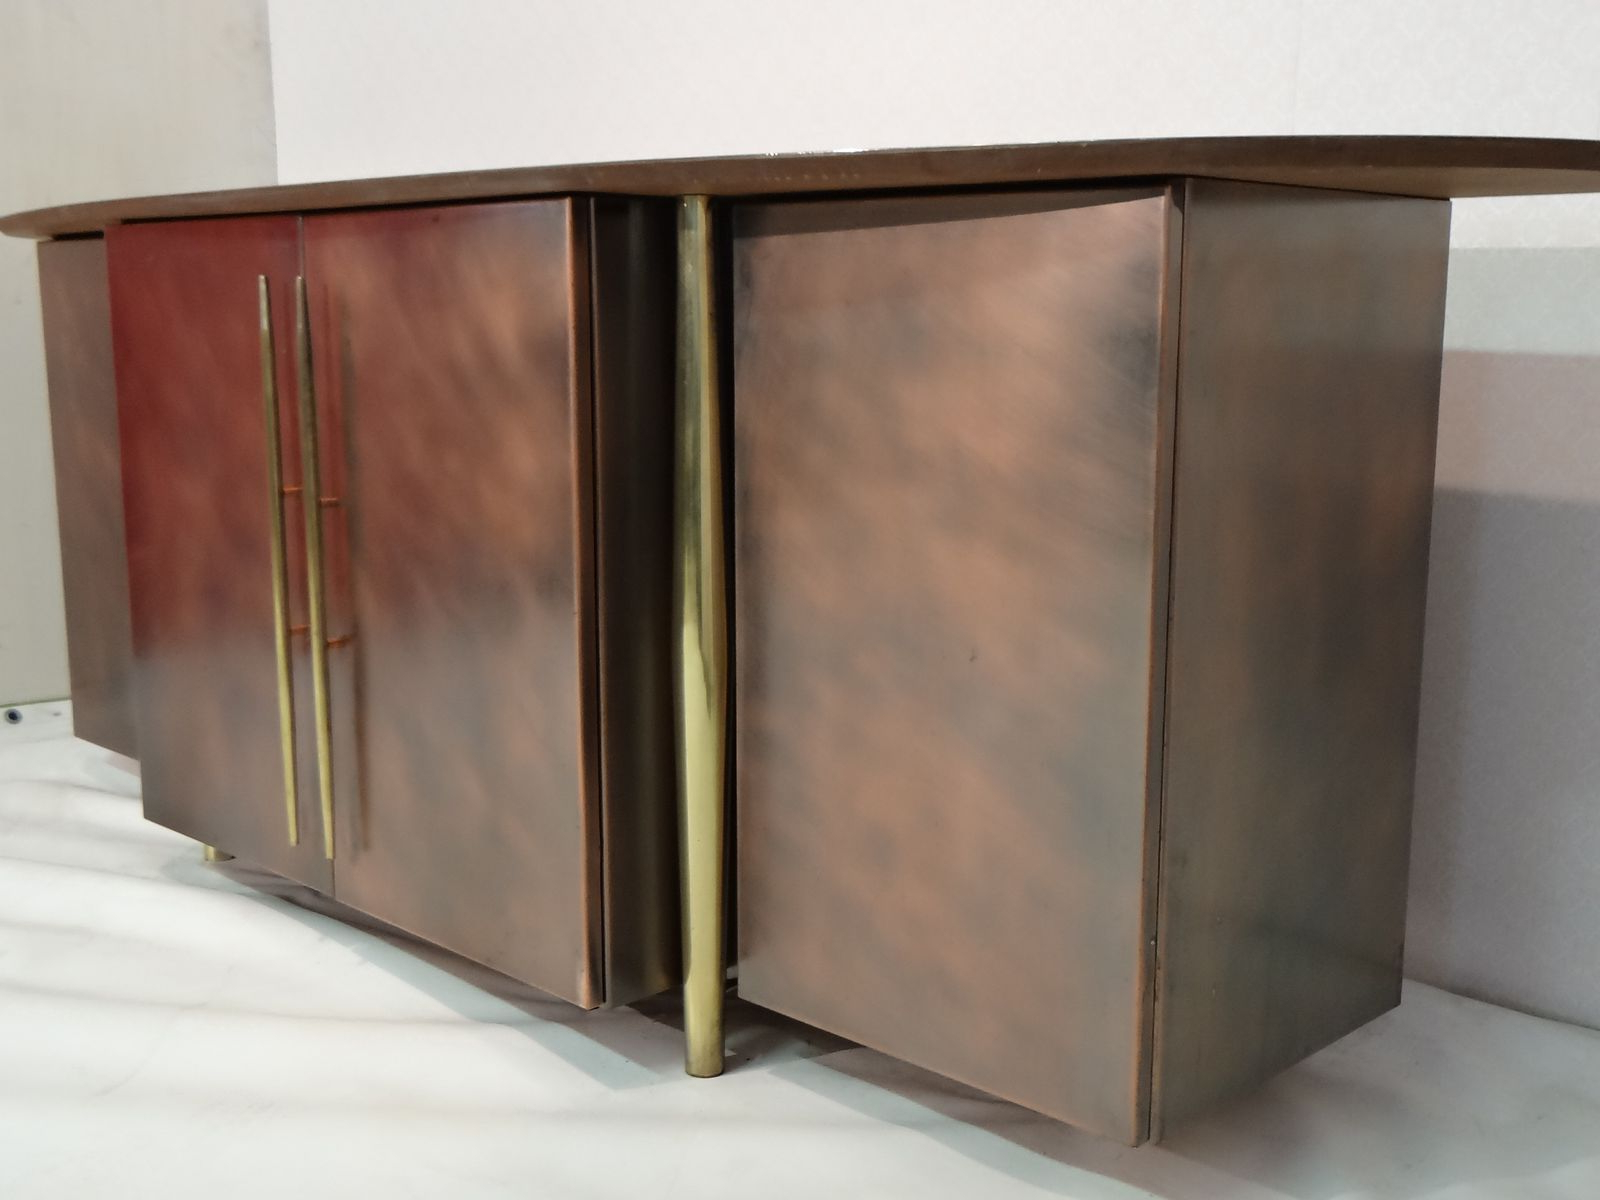 Popular Vintage Brass Sideboard From Belgo Chrom For Sale At Pamono Intended For Aged Brass Sideboards (Gallery 5 of 20)